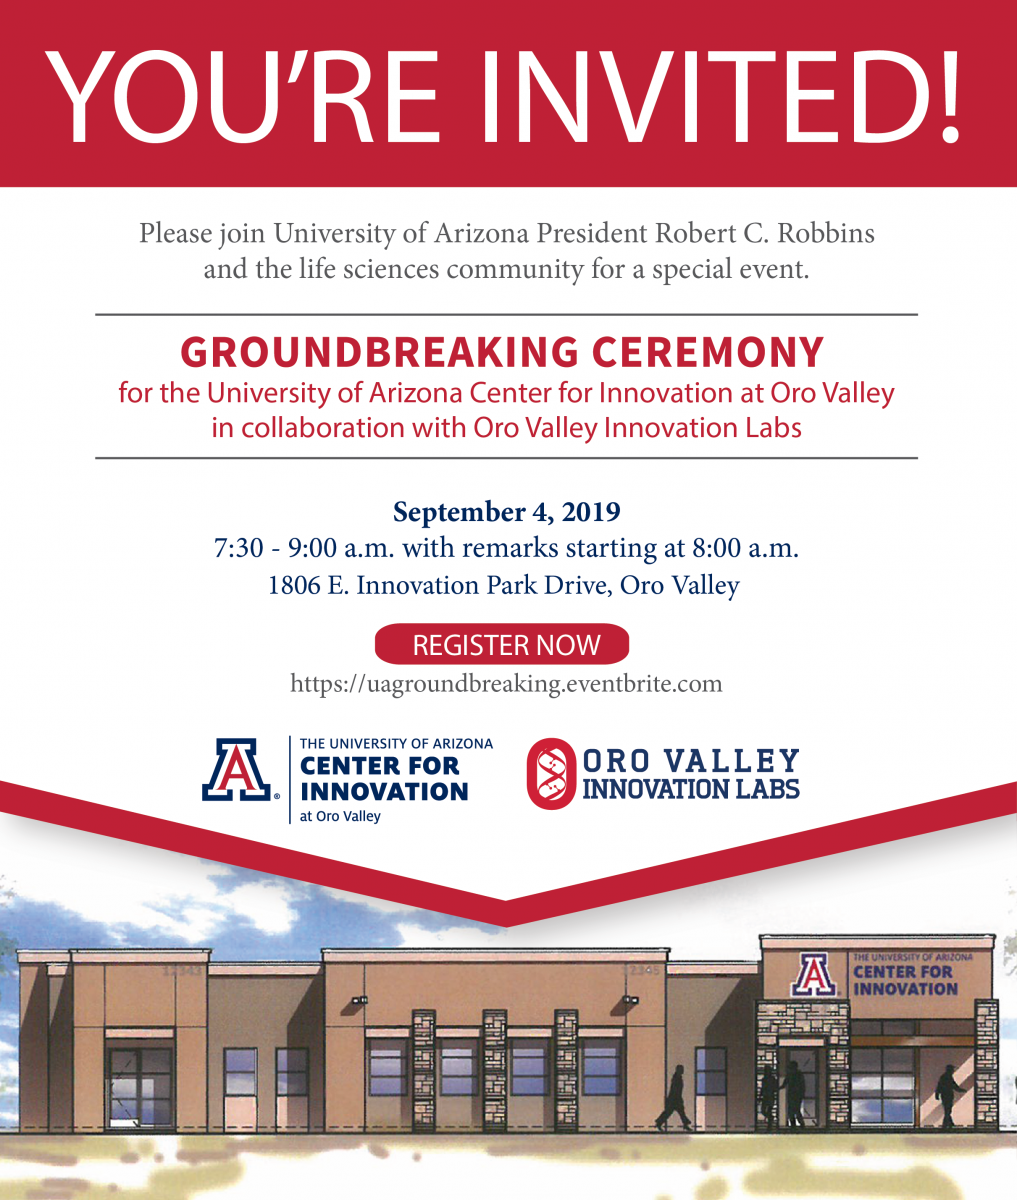 UAInnovation-evite you're invited.png